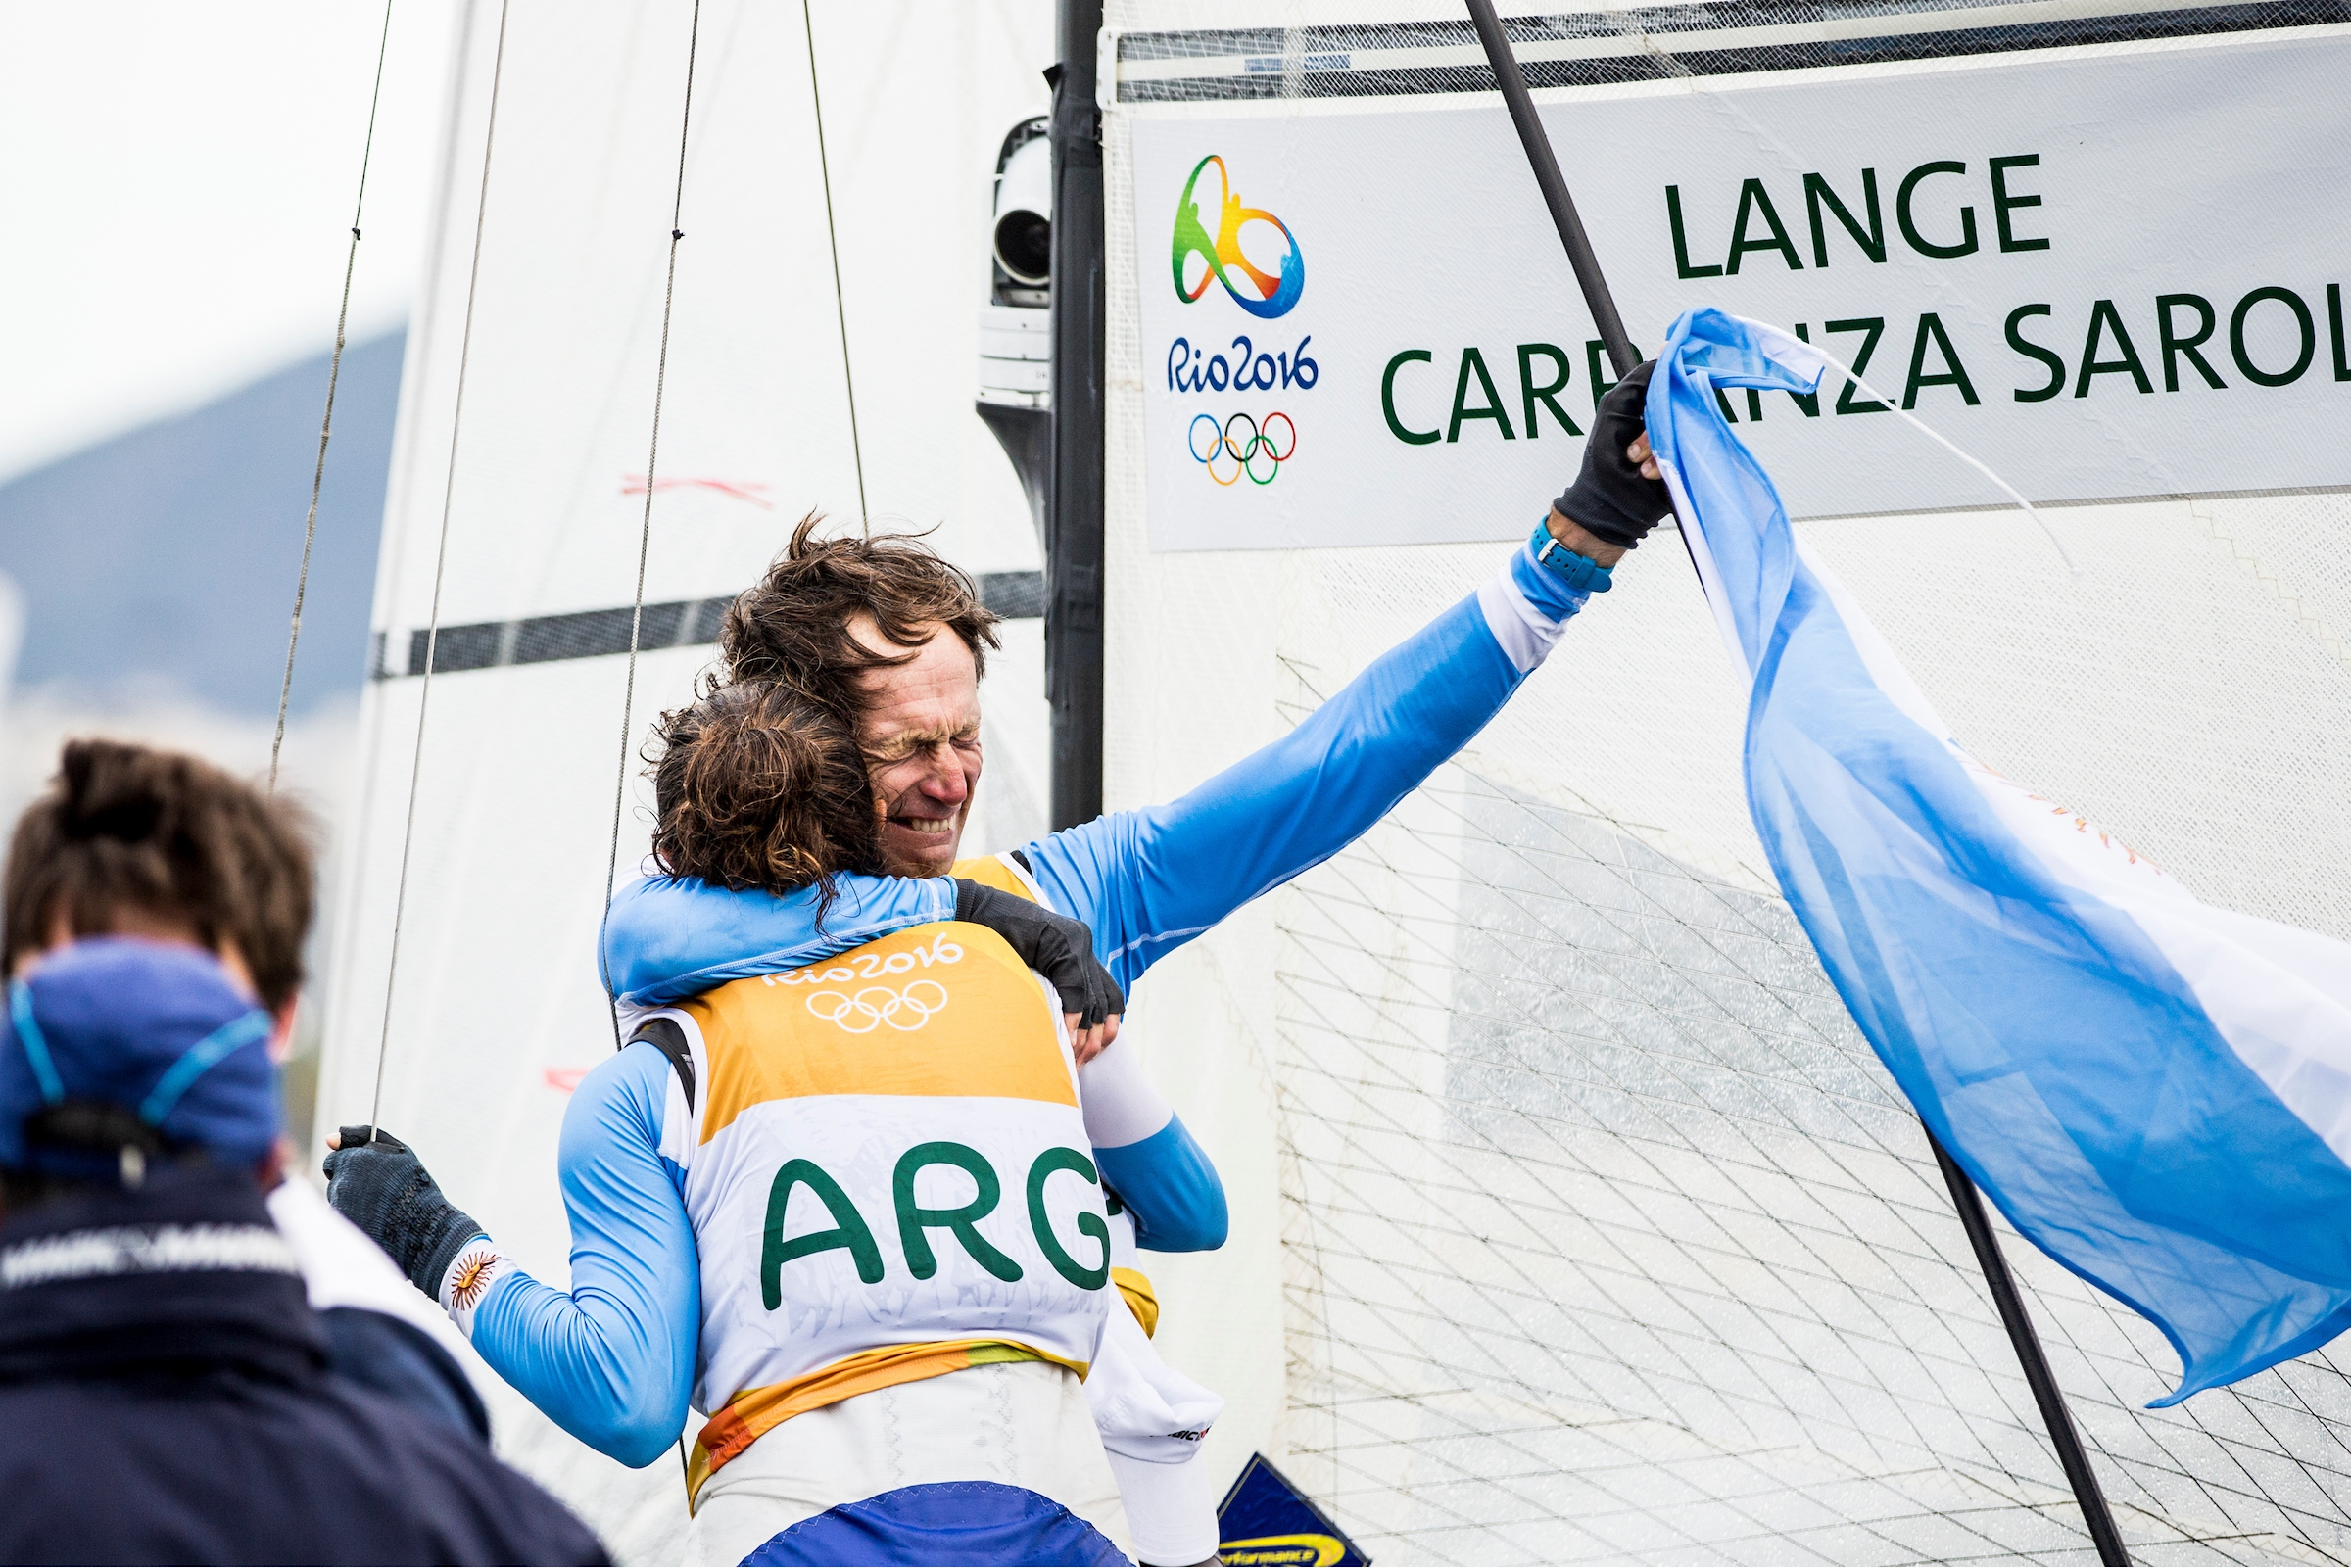 Argentineans win gold in the Nacra 17